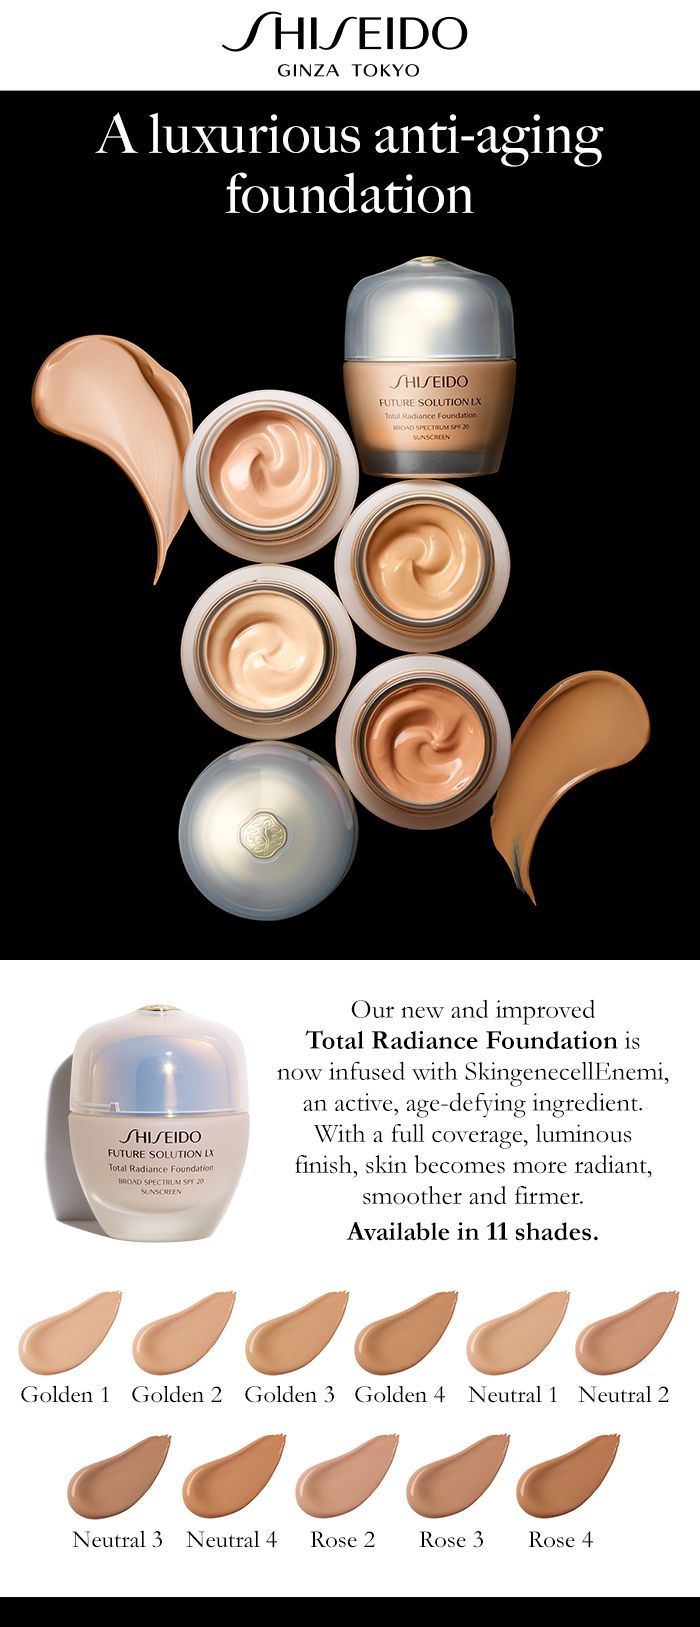 Our new and improved Total Radiance Foundation is now infused with SkingenecellEnmei, an active, #age-defying ingredient. With a full #coverage, luminous finish, skin becomes more #radiant, smoother and #firmer.  #JapaneseSkincare #antiaging